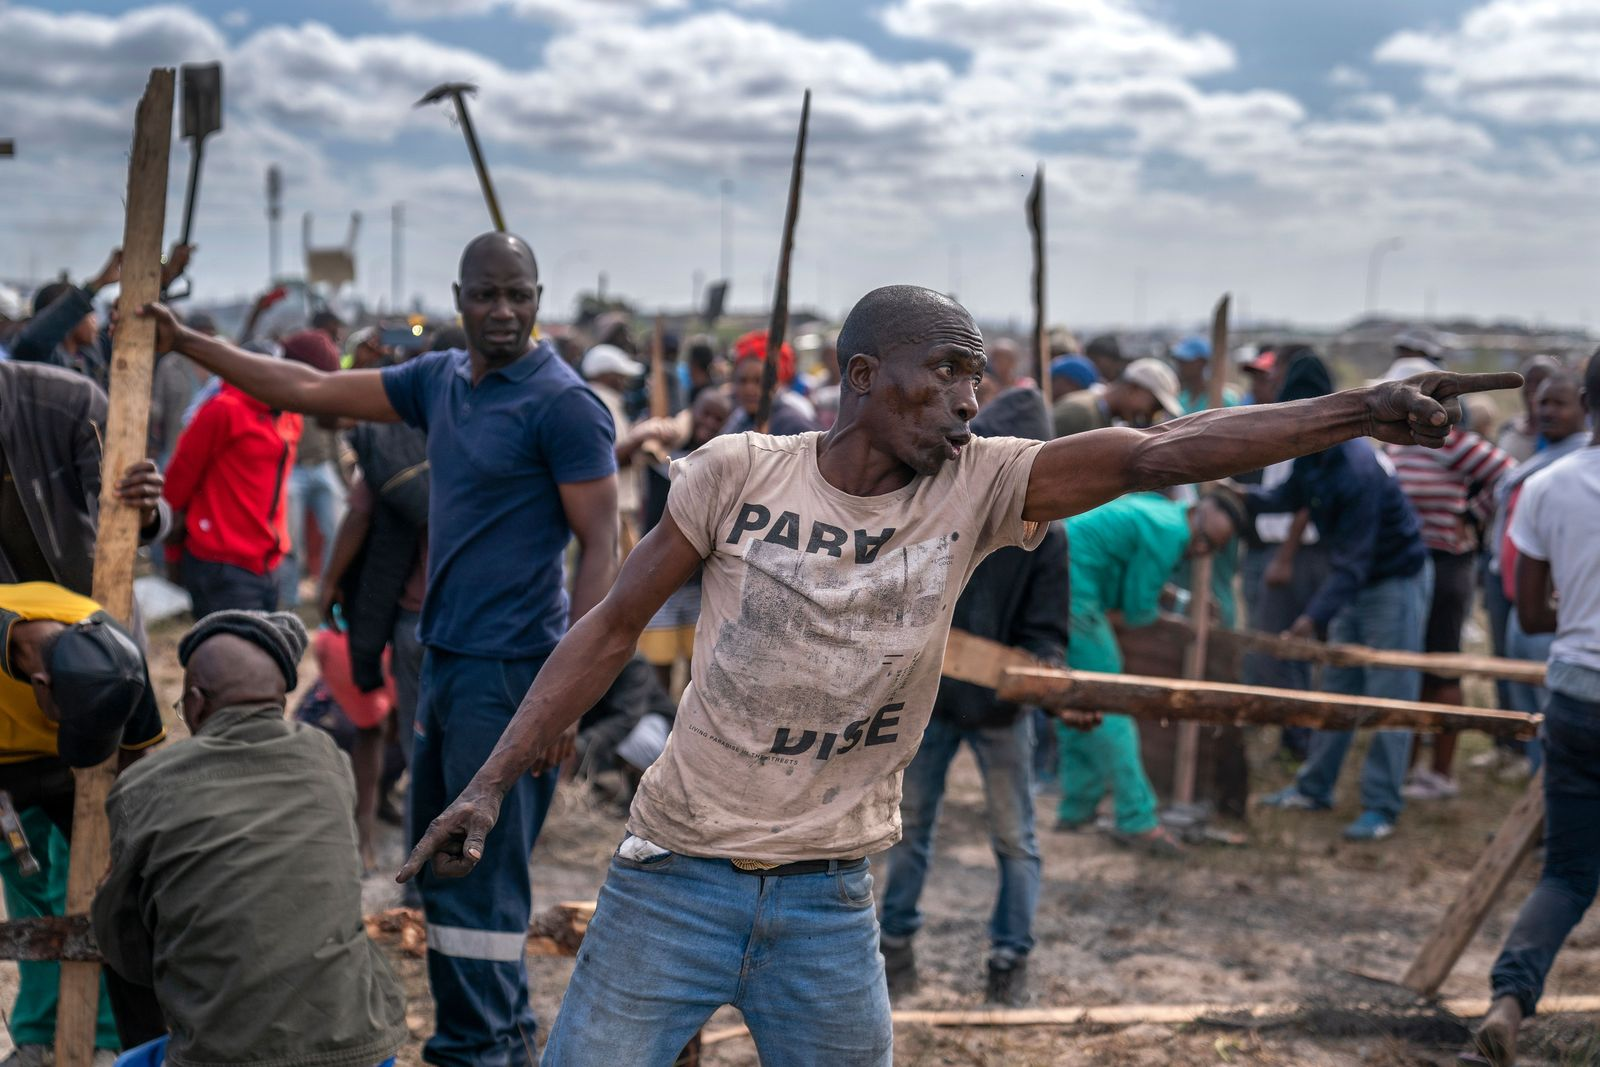 Khayelitsha land grabs stopped by police, Cape Town, South Africa - 21 Apr 2020